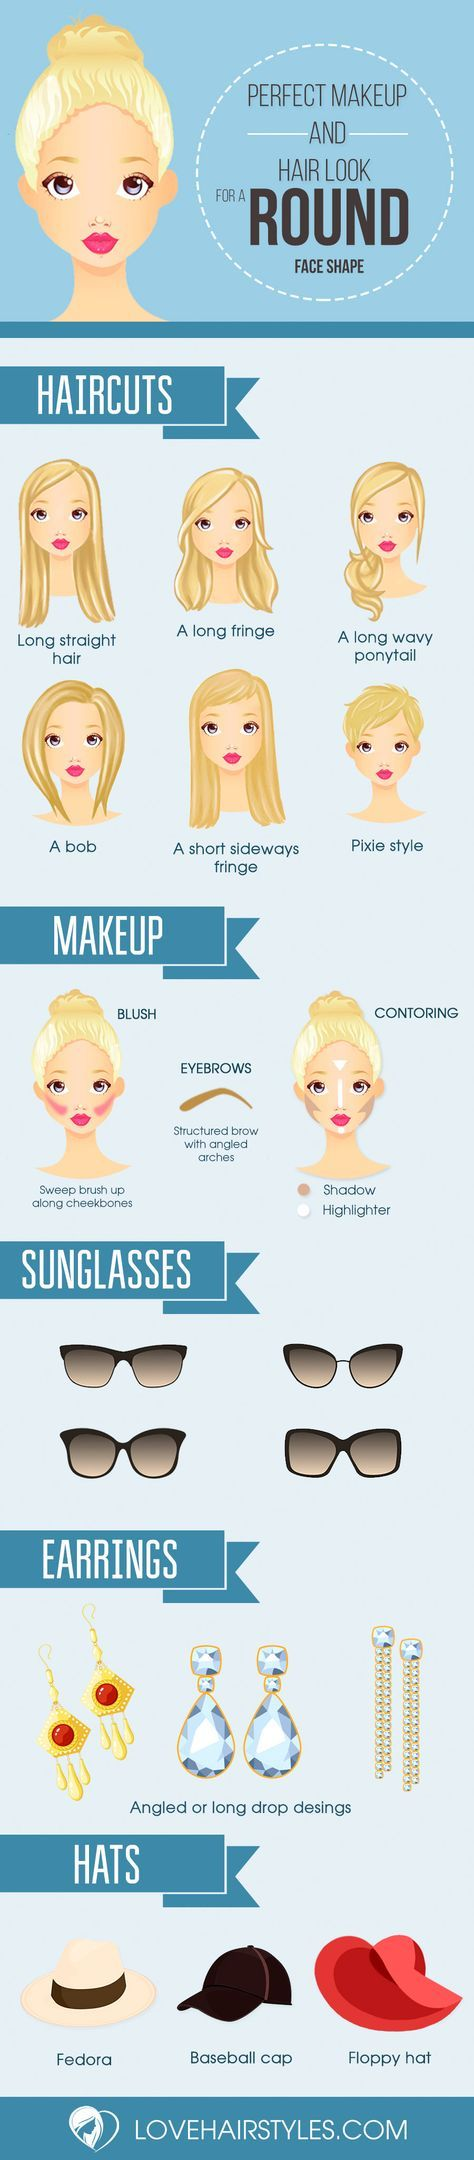 Try These Best Hairstyles and Makeup for Round Faces.